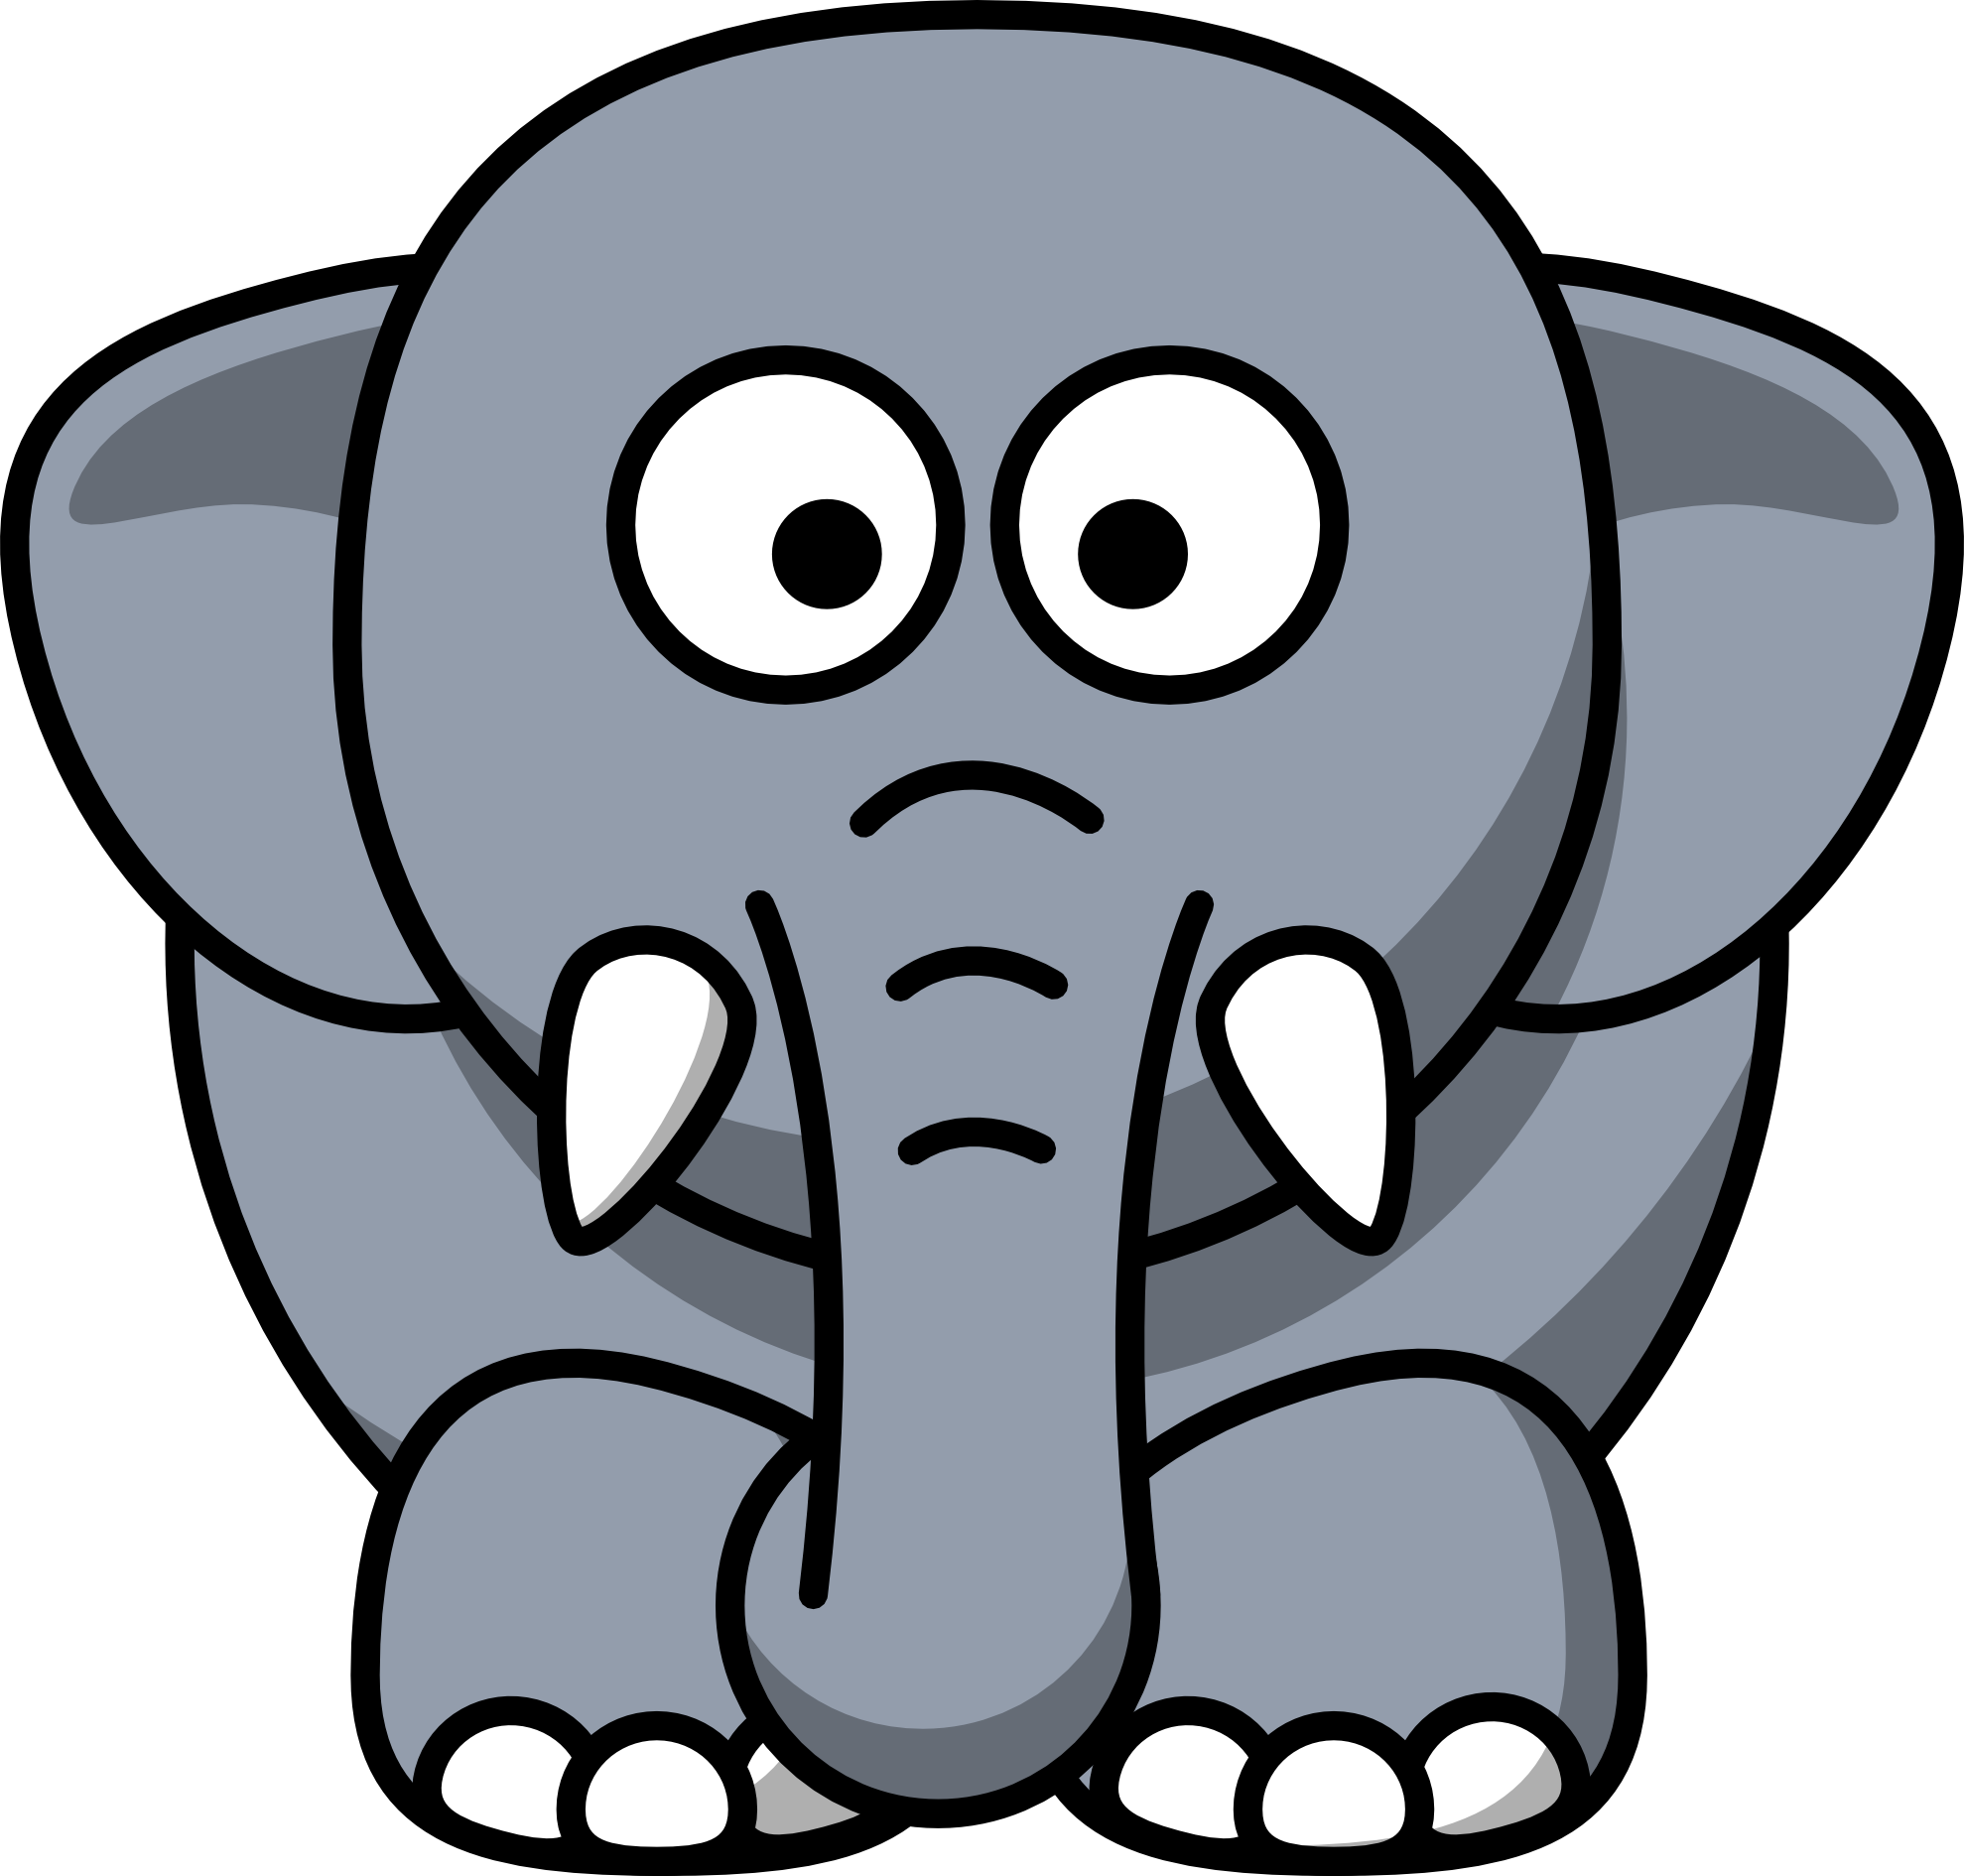 Free clipart elephant cartoon banner royalty free download Free Elephants Images, Download Free Clip Art, Free Clip Art on ... banner royalty free download